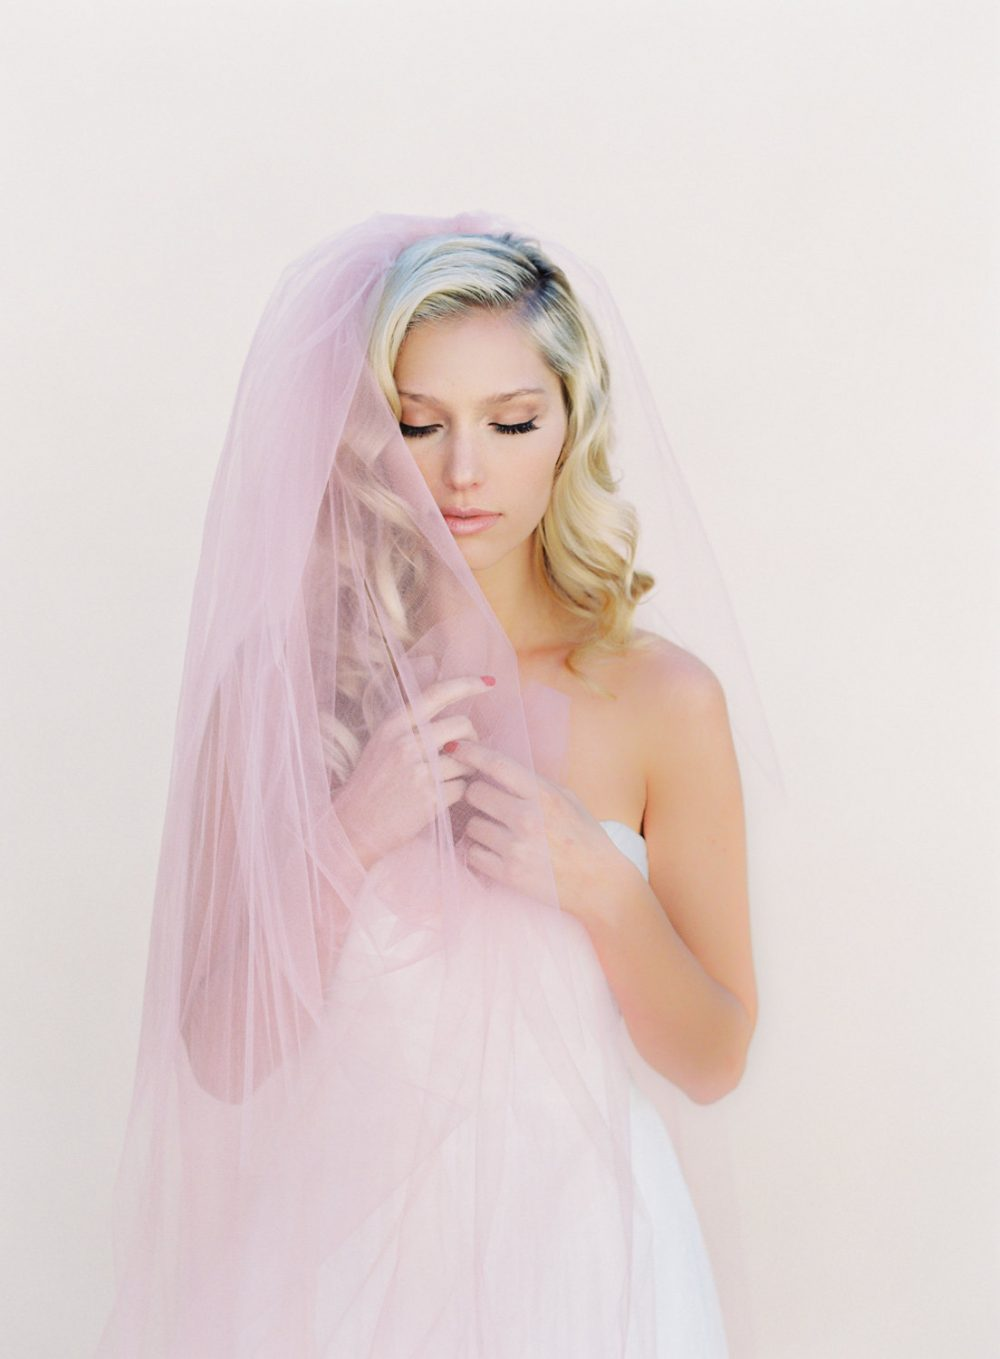 Blush Veil-Little Something-Simple Wedding Veil-Ivory Simple Veil-Soft Veil - Chapel Length Veil-Wedding Veil Blusher-Boho 0802